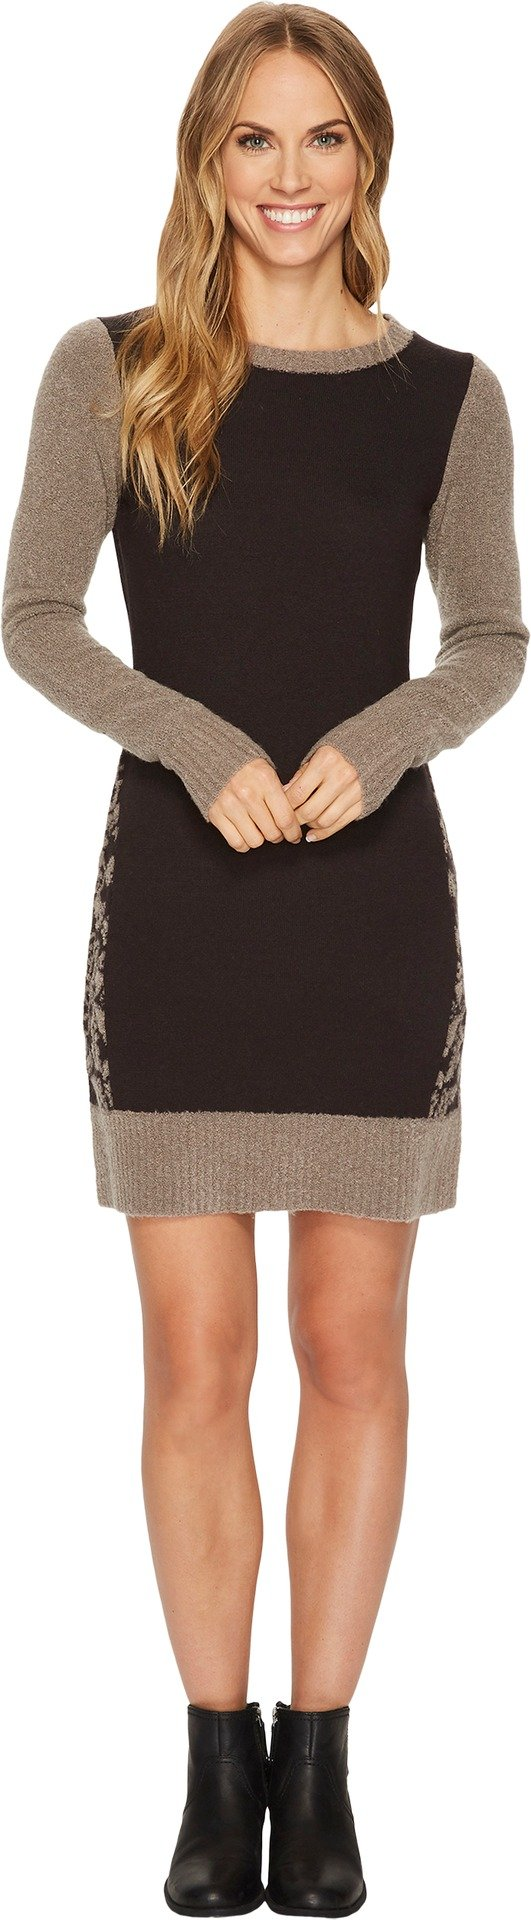 Toad&Co Women's Lucianna Sweater Dress Cocoa Medium